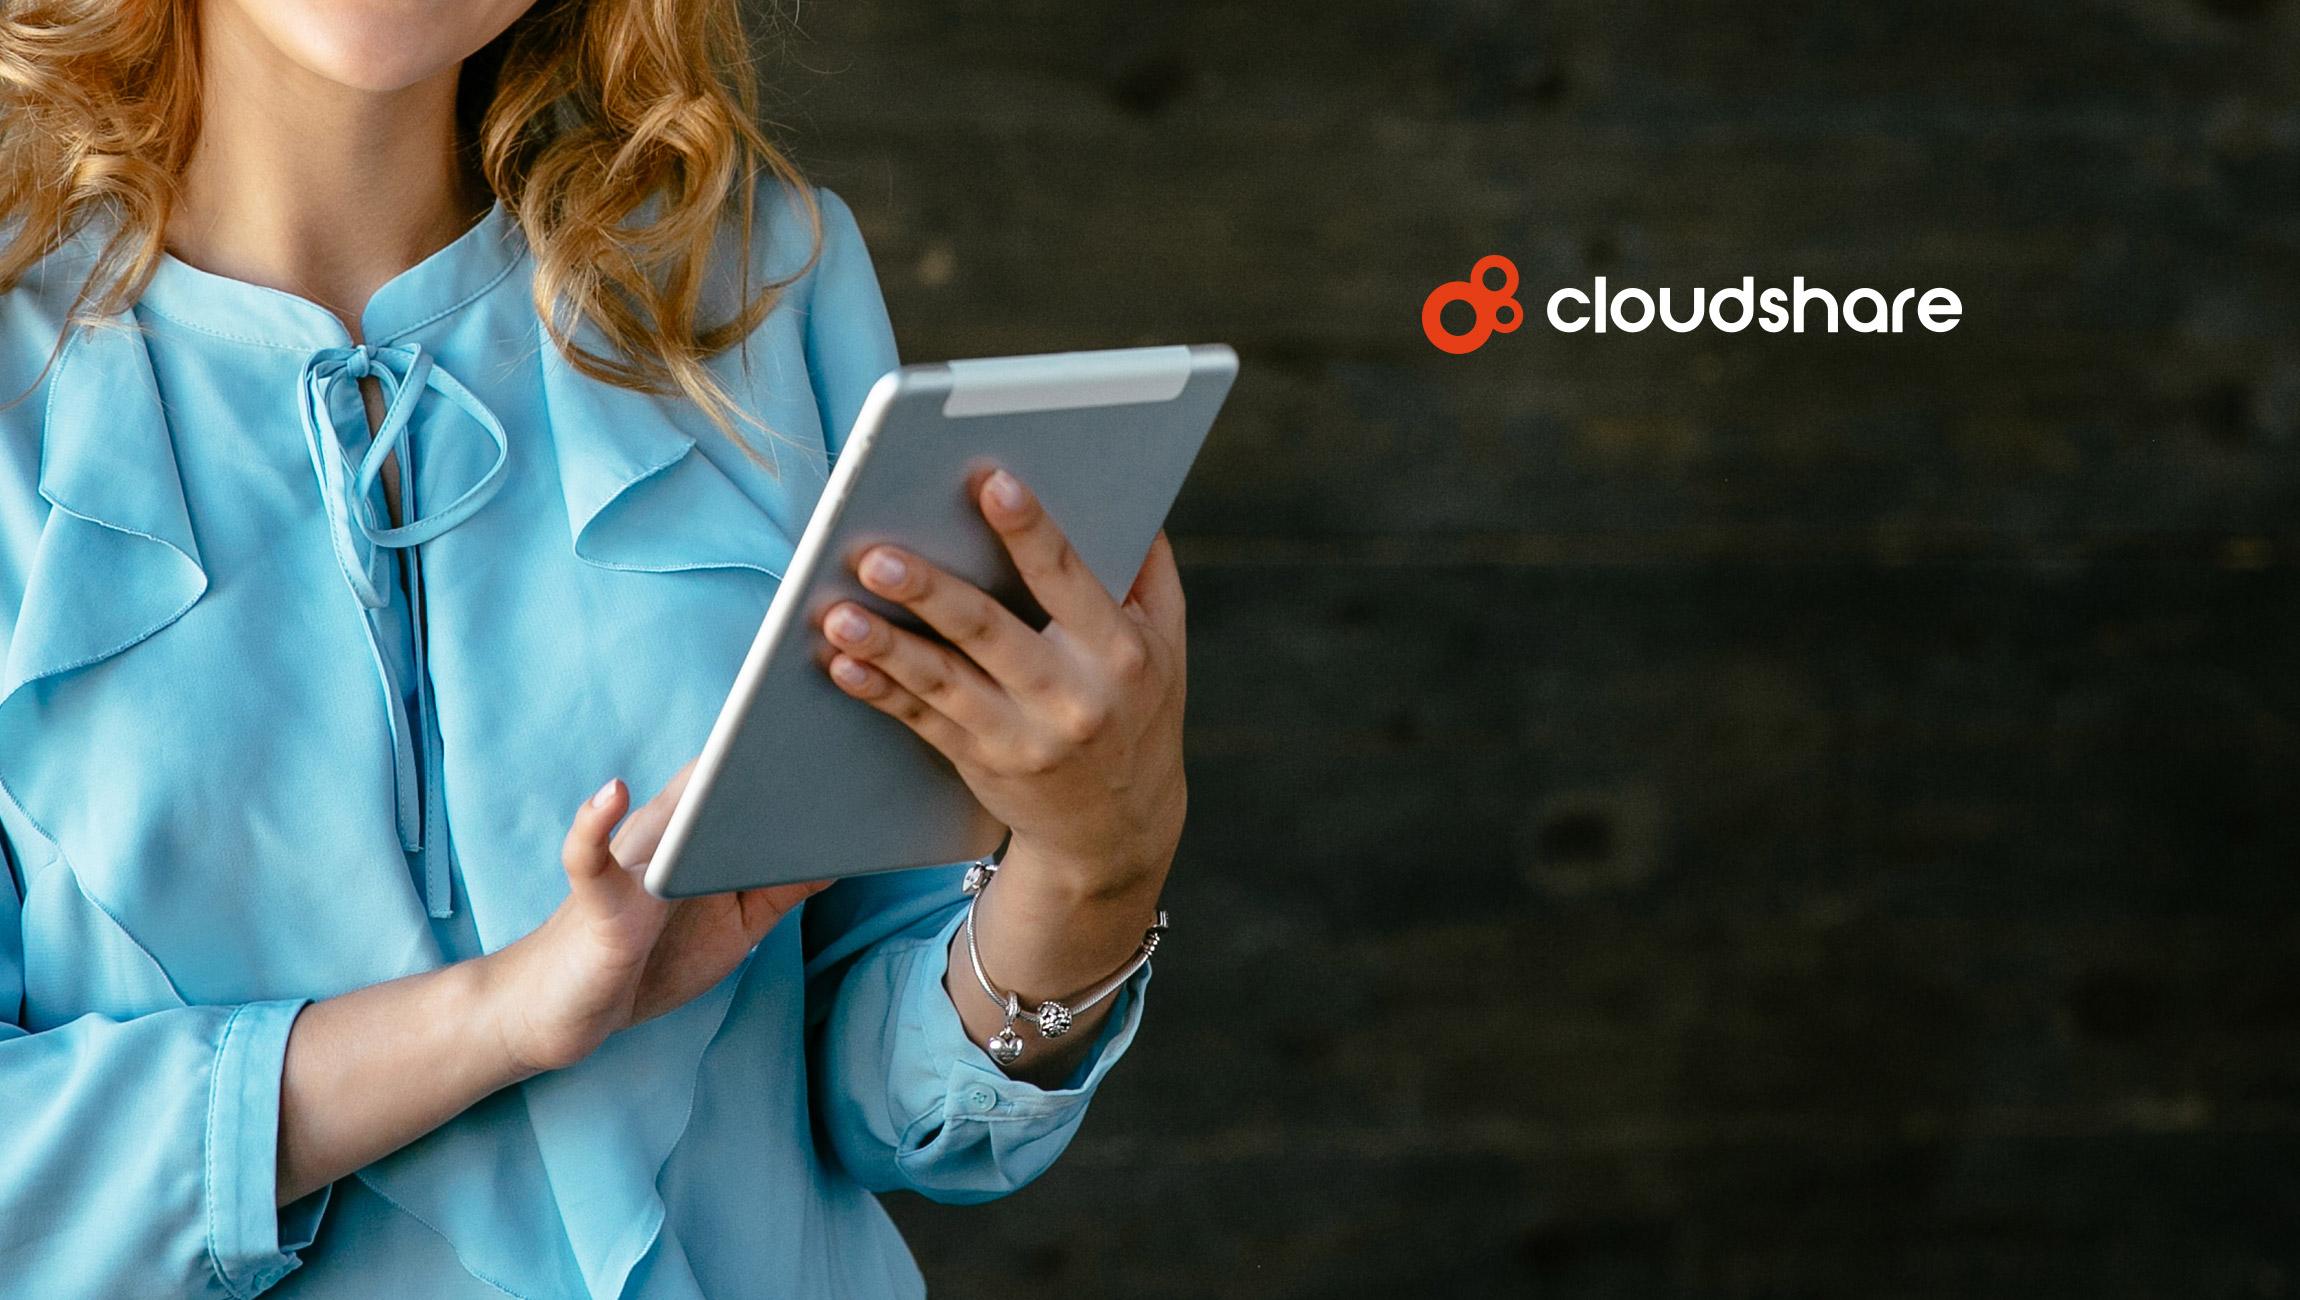 CloudShare Launches Flexible Sales Enablement Solution to Reduce Sales Friction, Illuminate Buyer Journeys and Empower Teams with Advanced Analytics